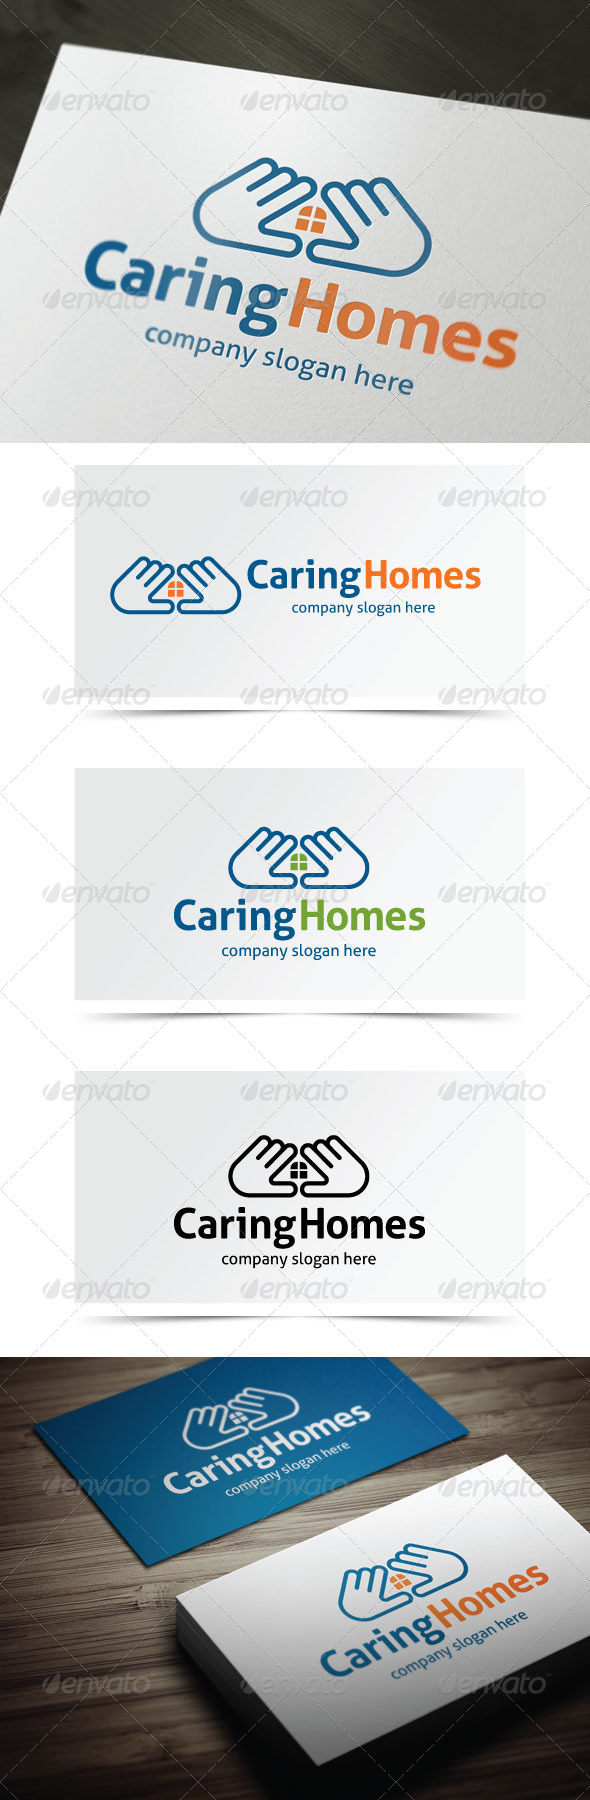 GraphicRiver Caring Homes 5524022